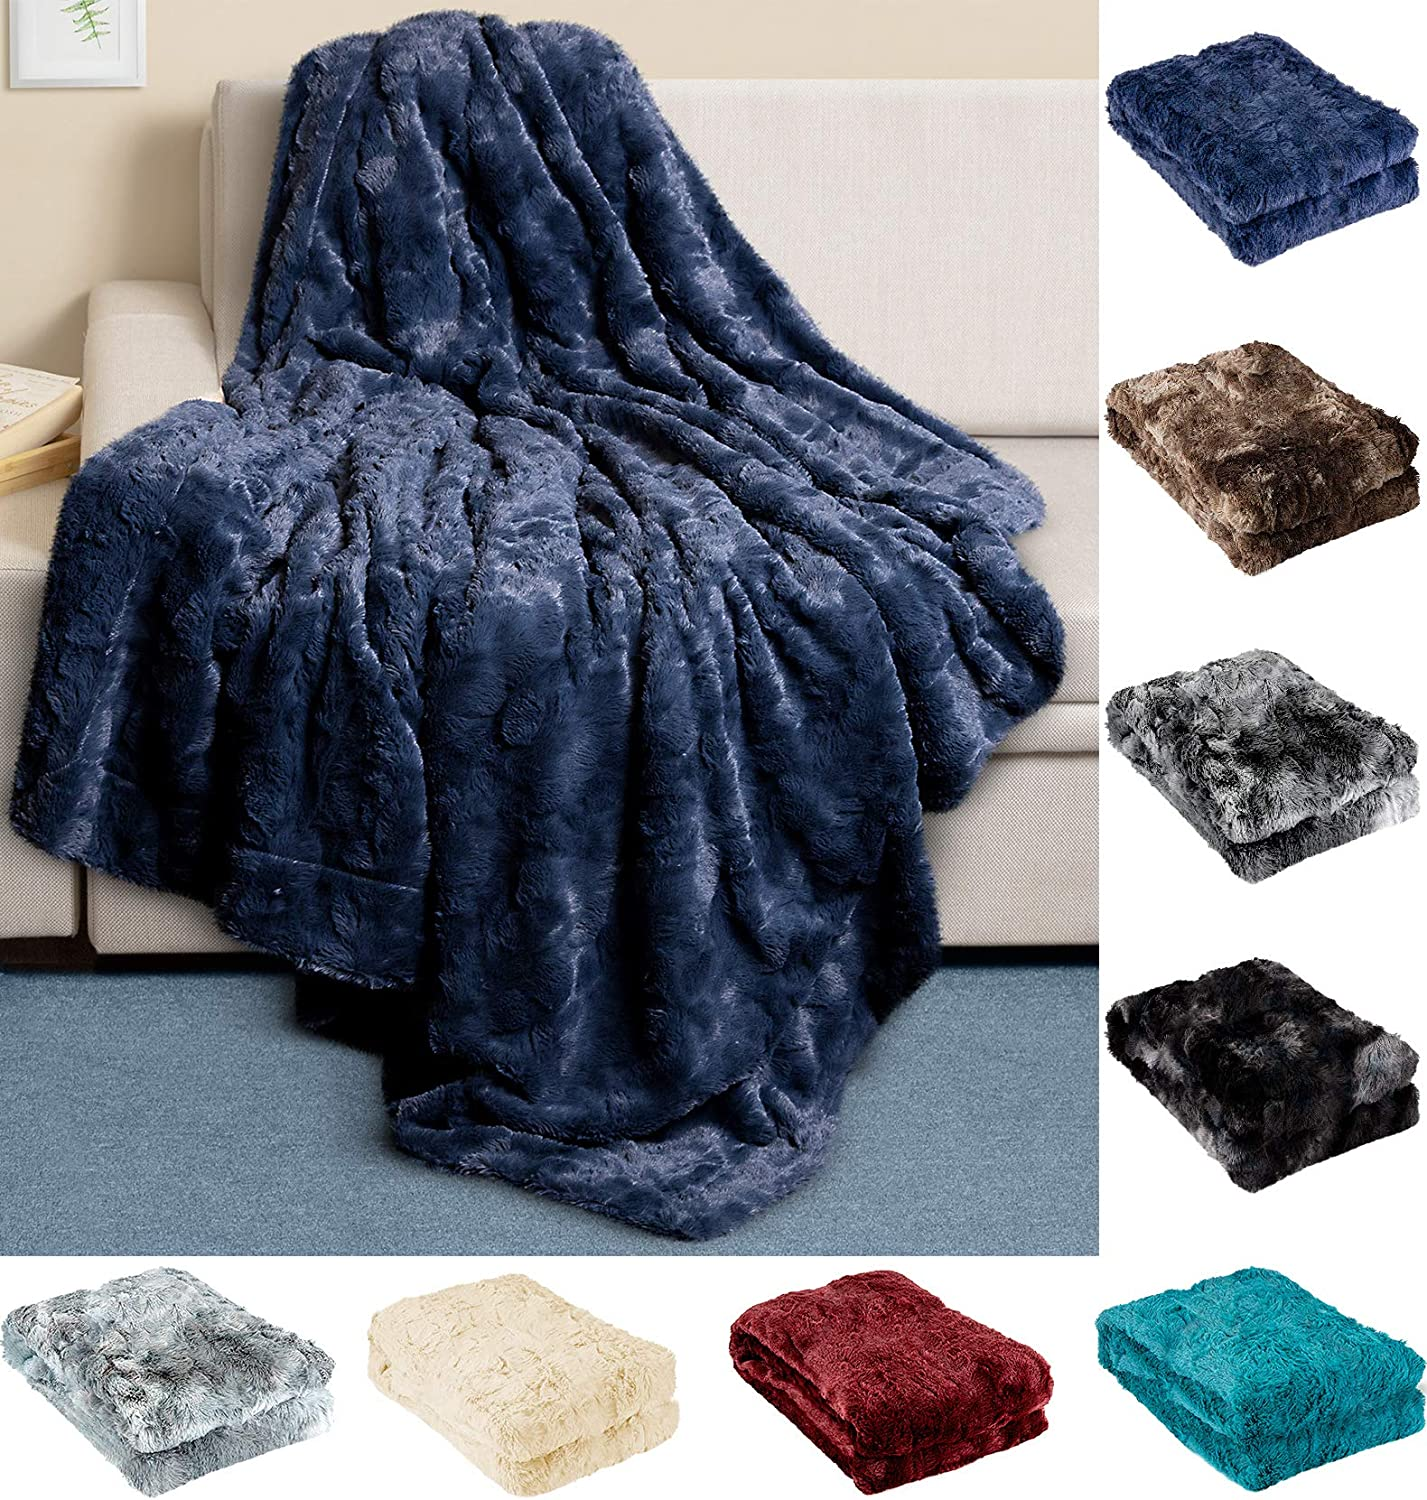 Everlasting Comfort Luxury Faux Fur Throw Blanket - Ultra Soft and Fluffy - Plush Throw Blankets for Couch Bed and Living Room - Fall Winter and Spring - 50x65 (Full Size) Navy Blue